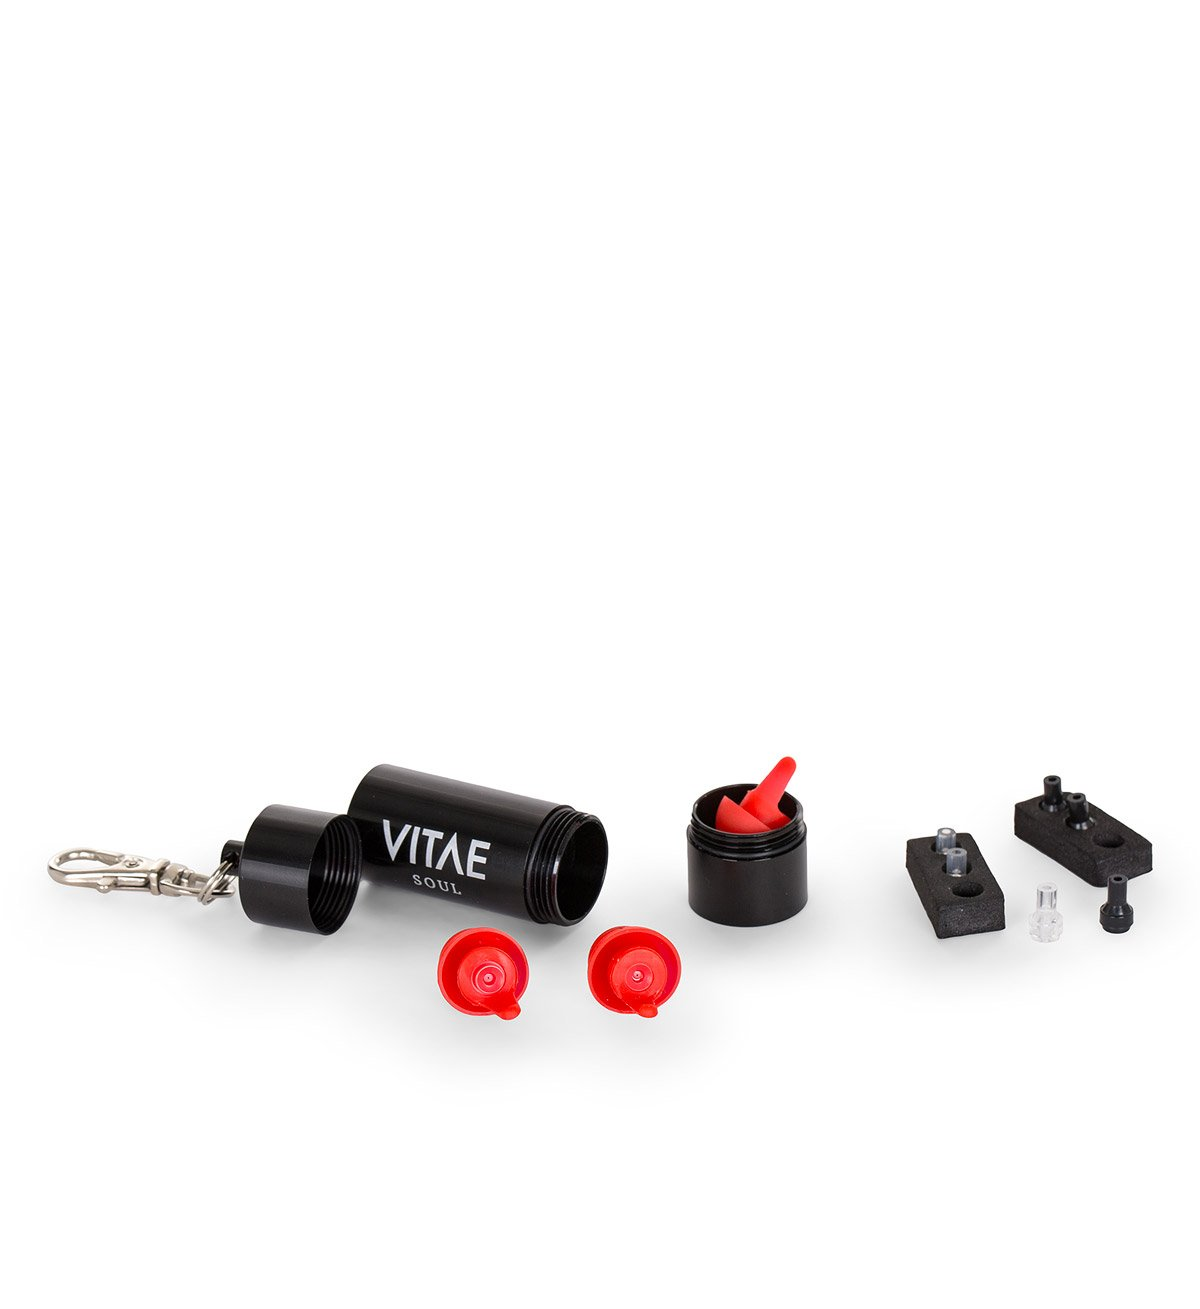 Vitae Soul Protective Ear Plugs for Motorcyclist Including Protective Aluminum Case 3 Ear Plugs /& 3 Filter Sets 26,20 or 17 db Noise Reduction Fits Under Helmet